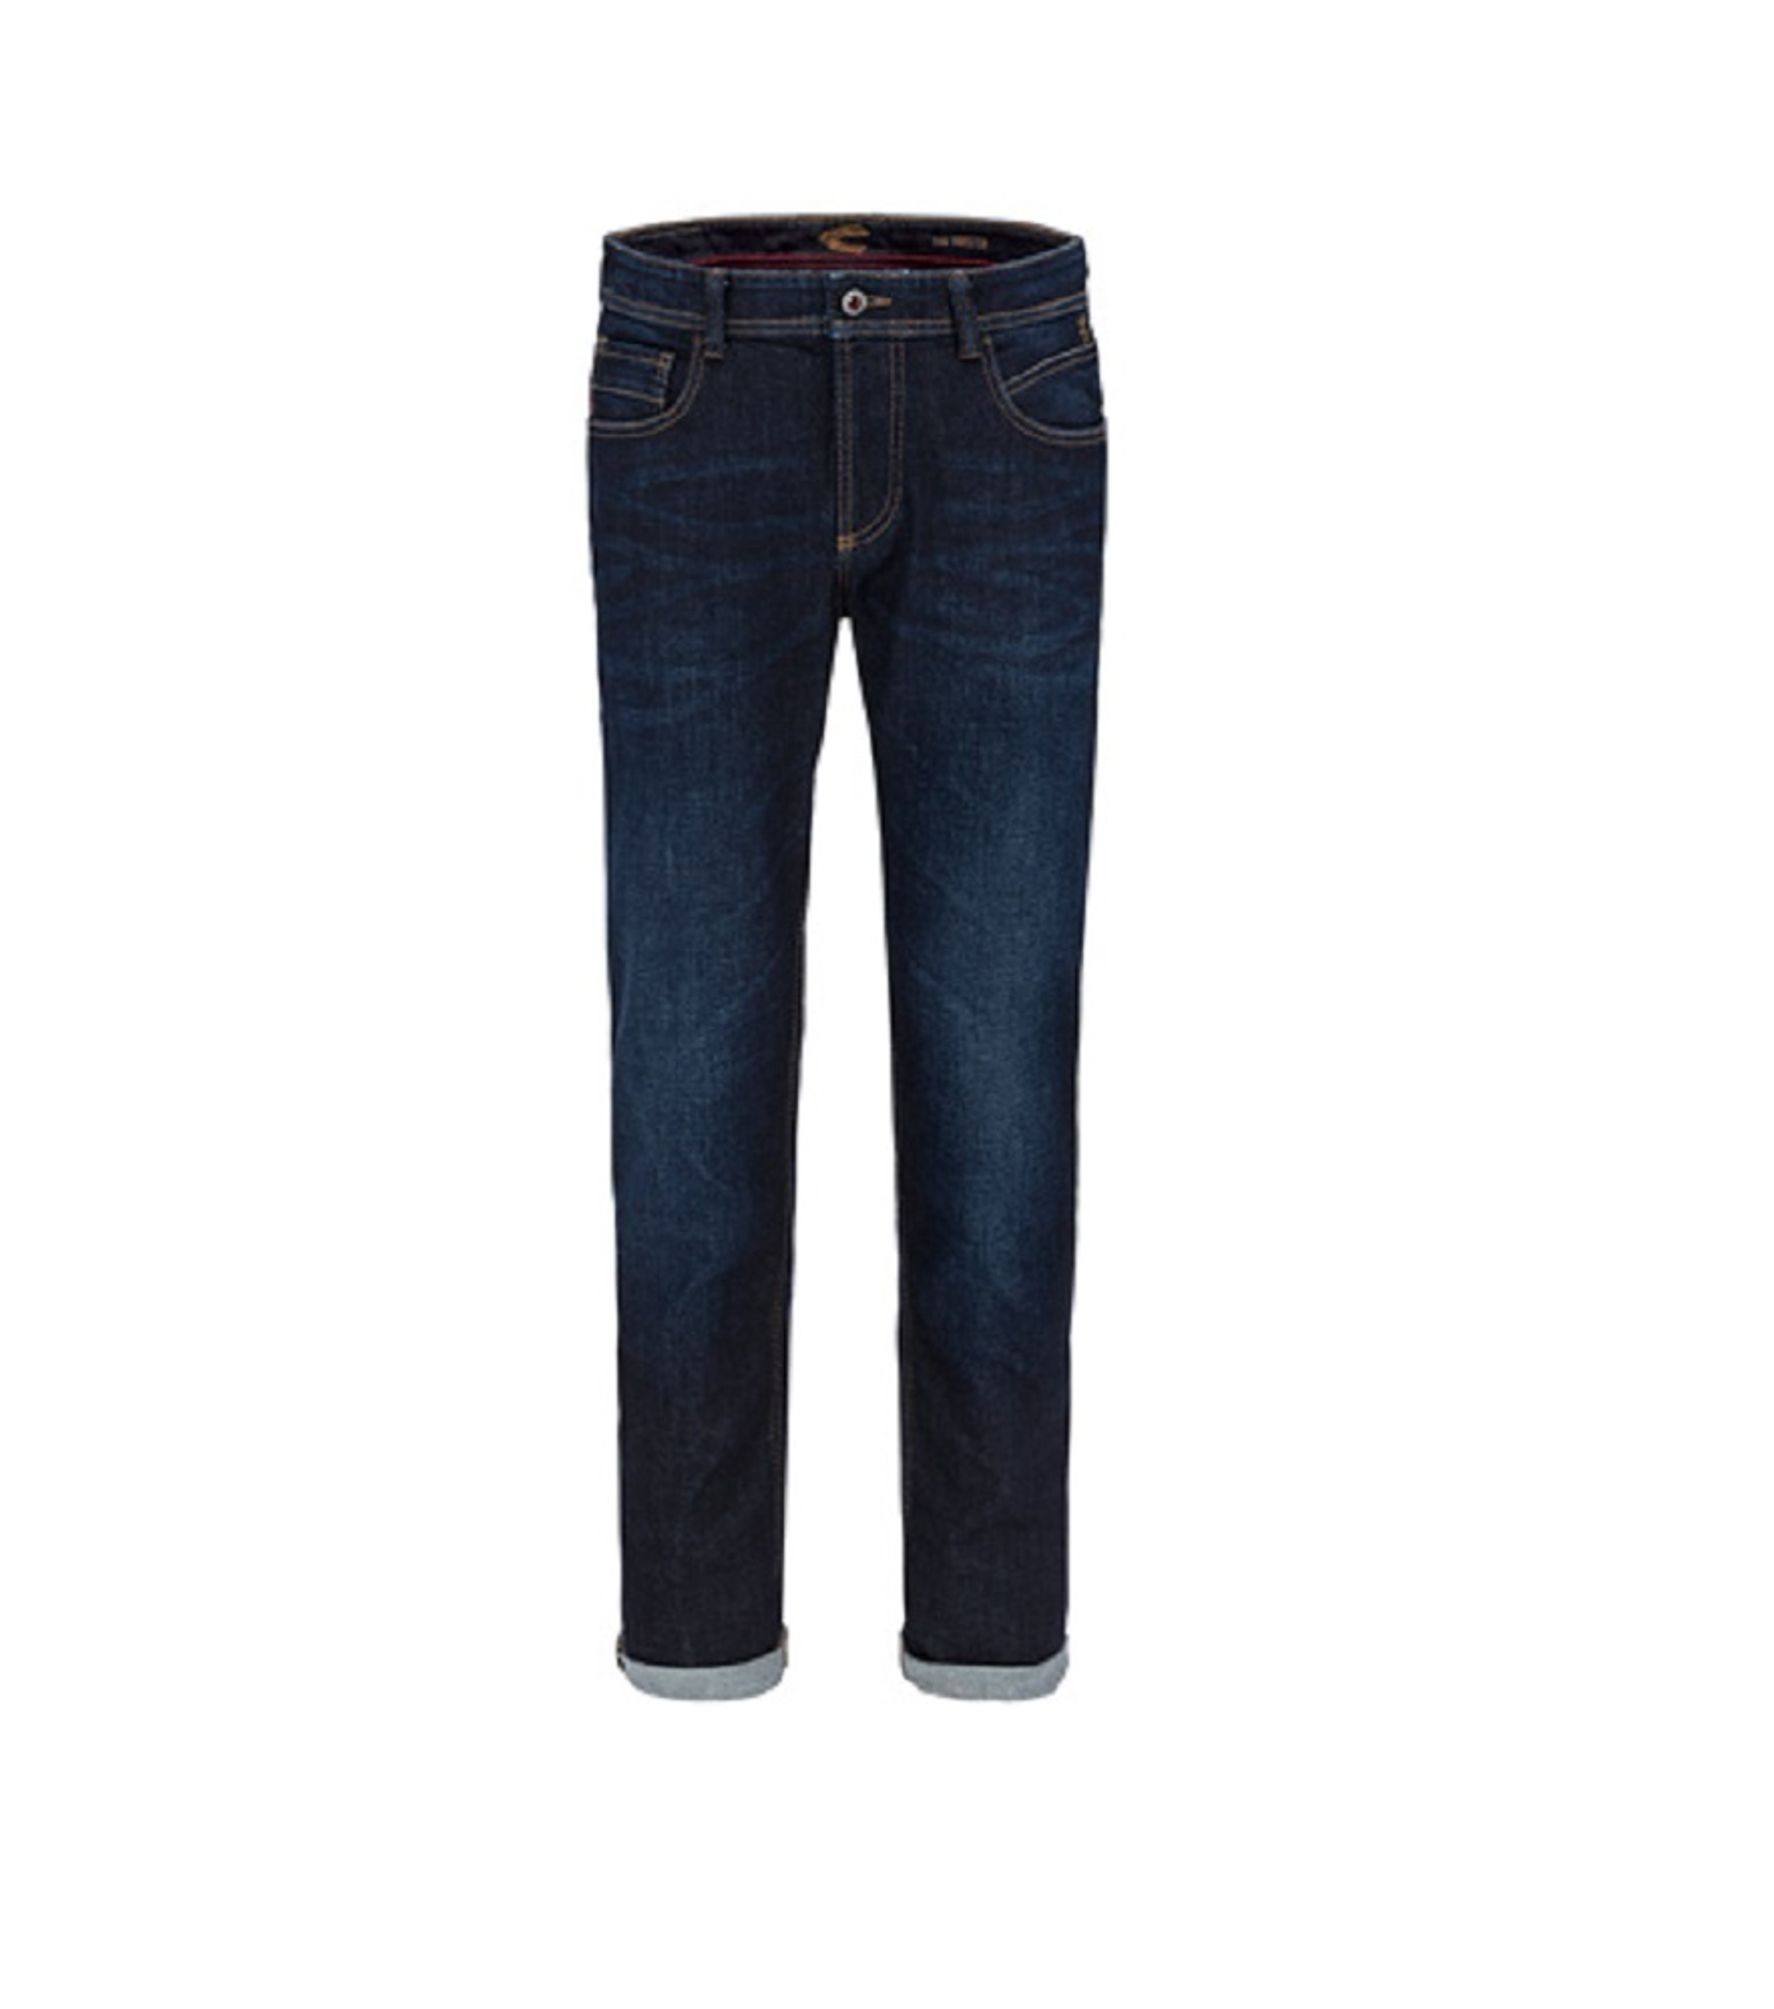 Camel Active Herren Jeans 5 Pocket Houston 488235 9829)